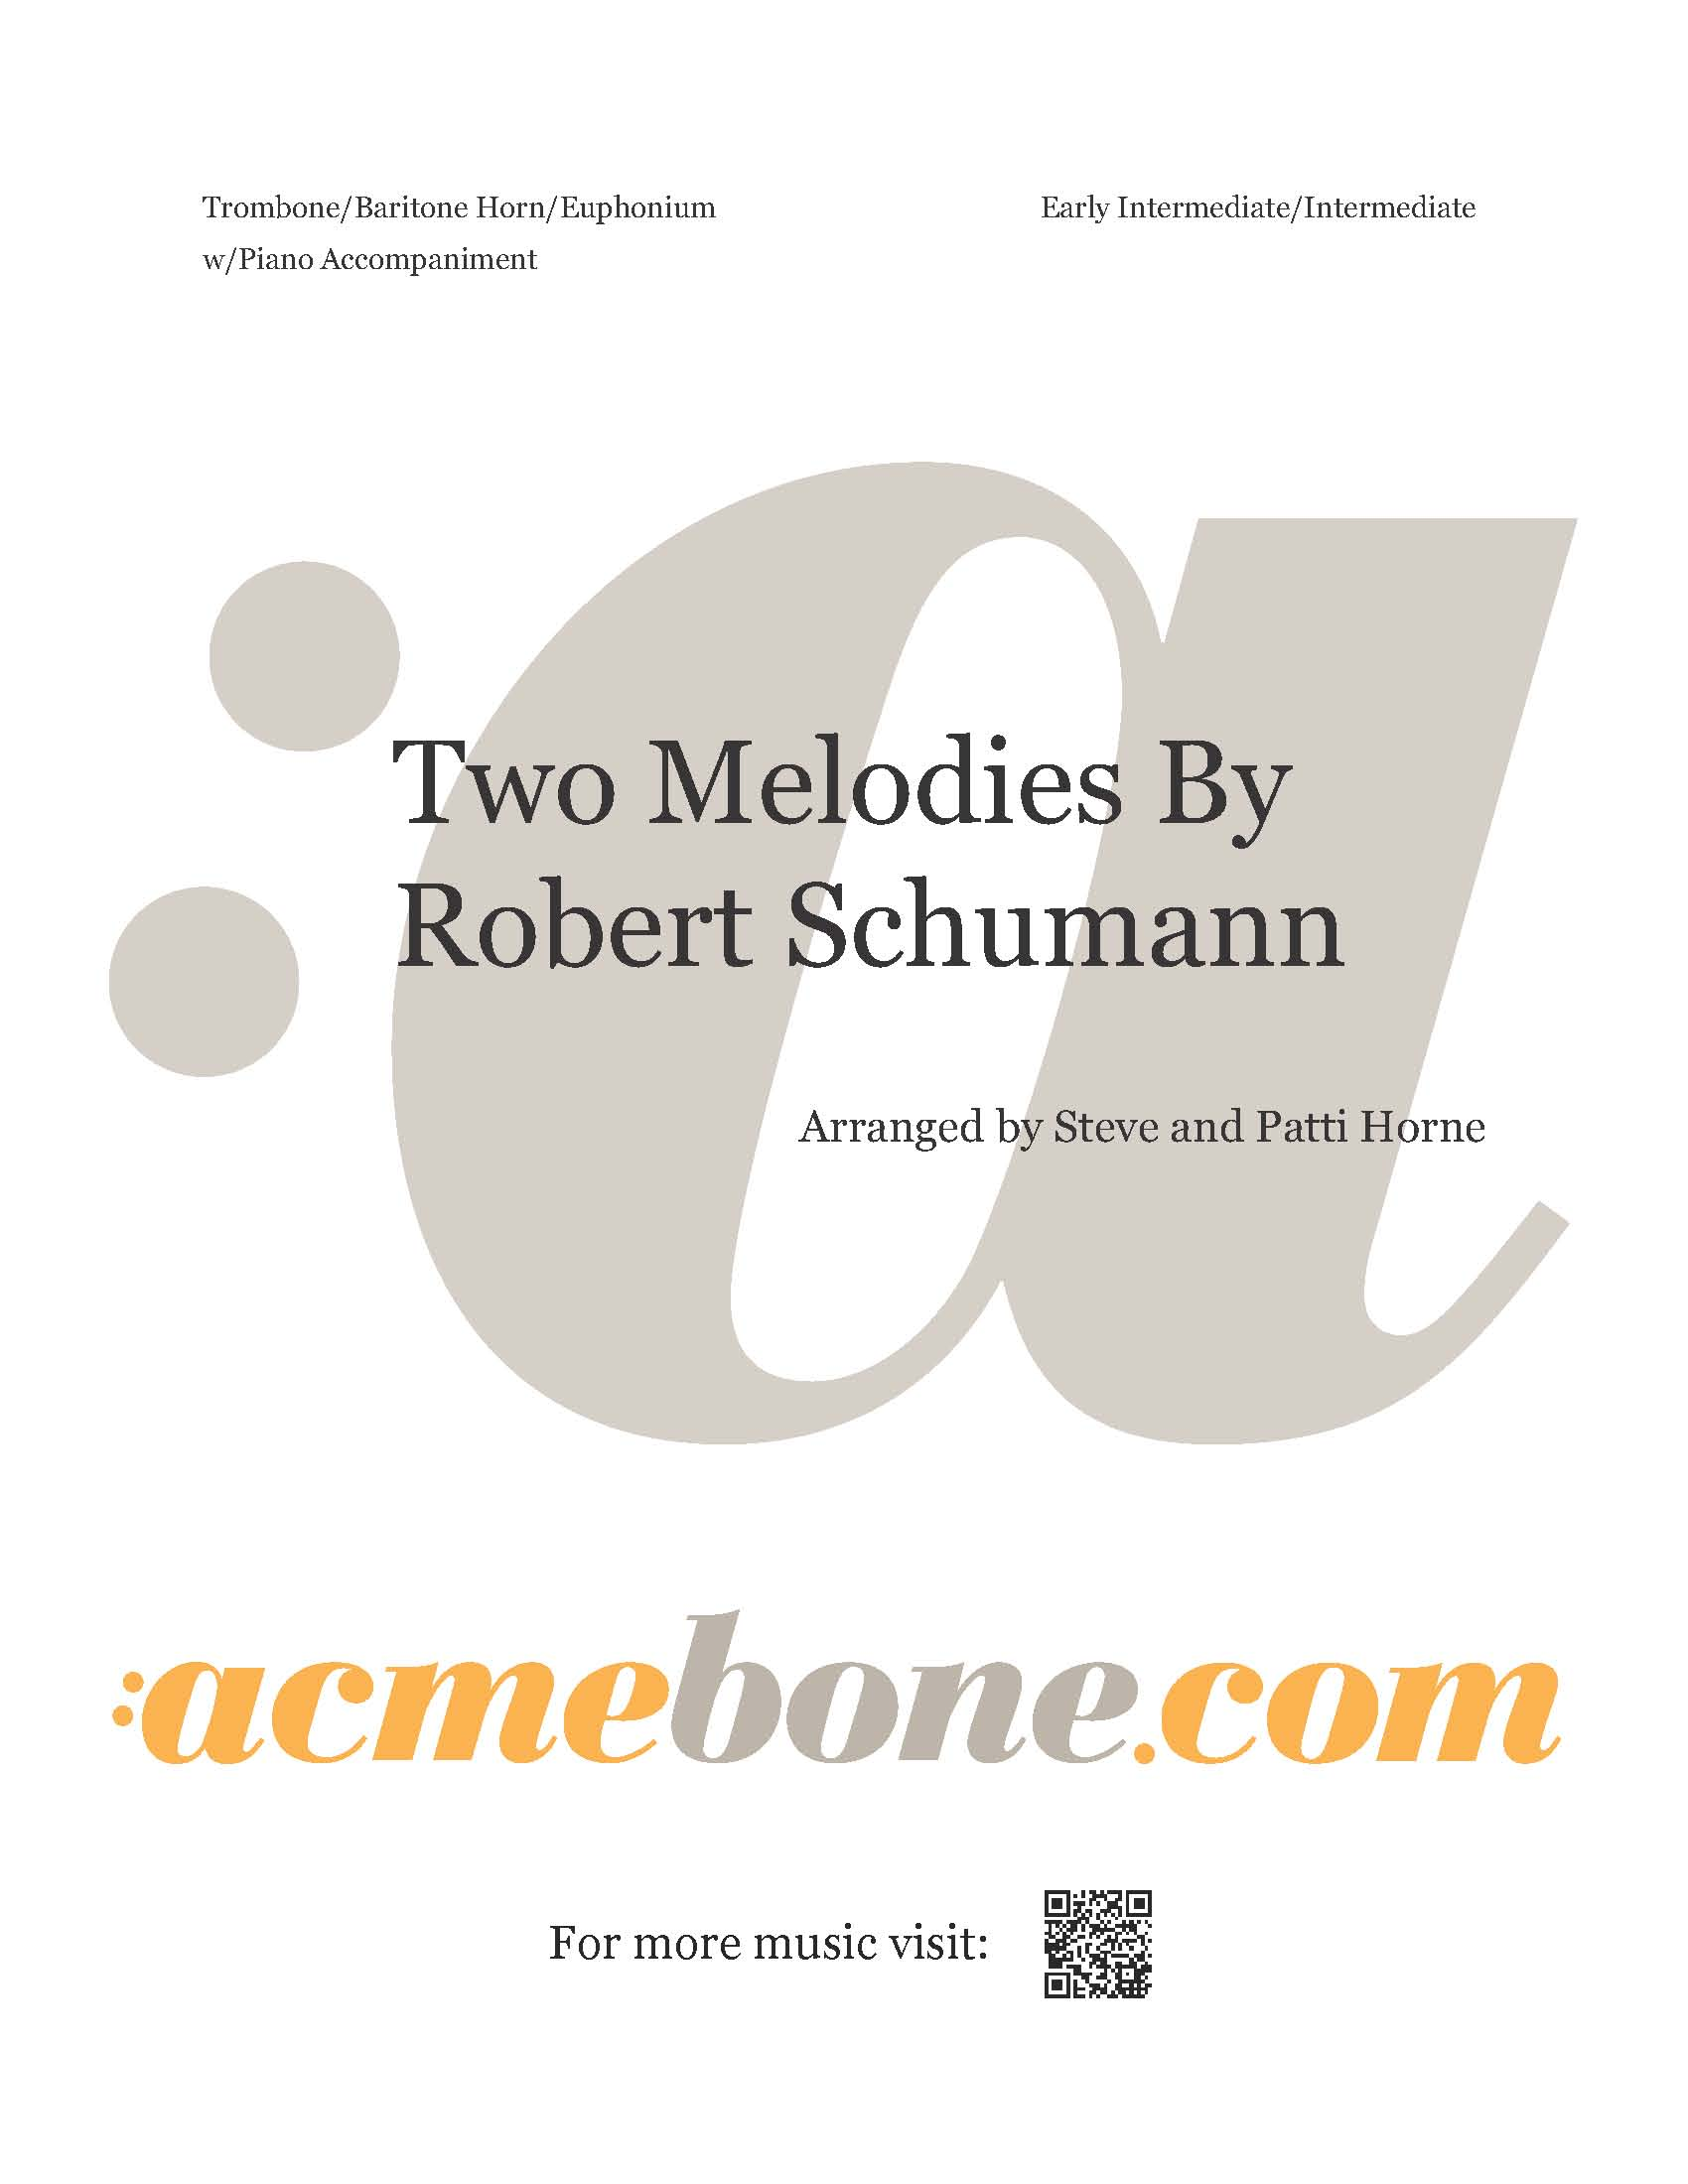 Two Melodies By Robert Schumann_digital_cover.jpg